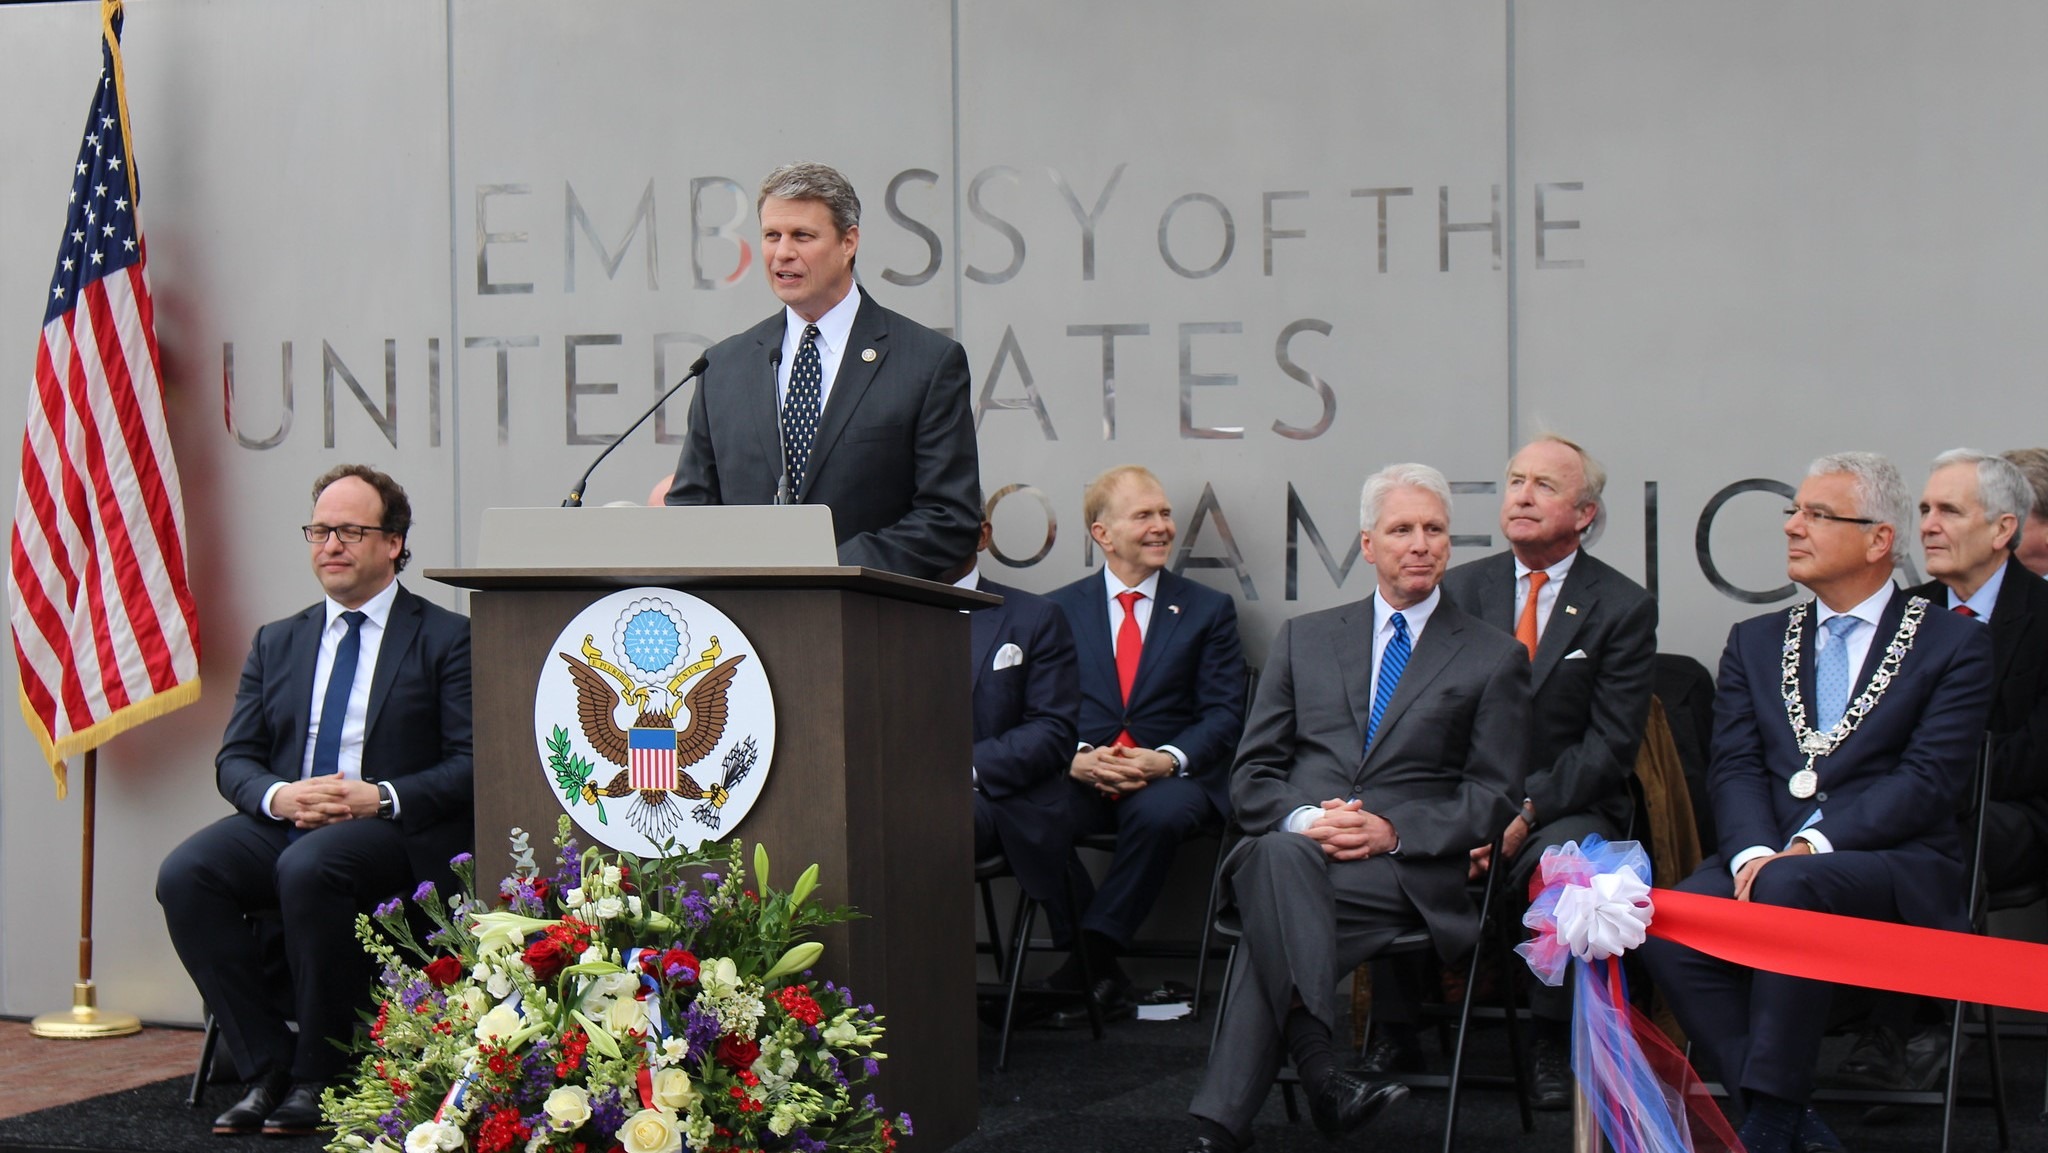 Photo by U.S. Embassy The Hague